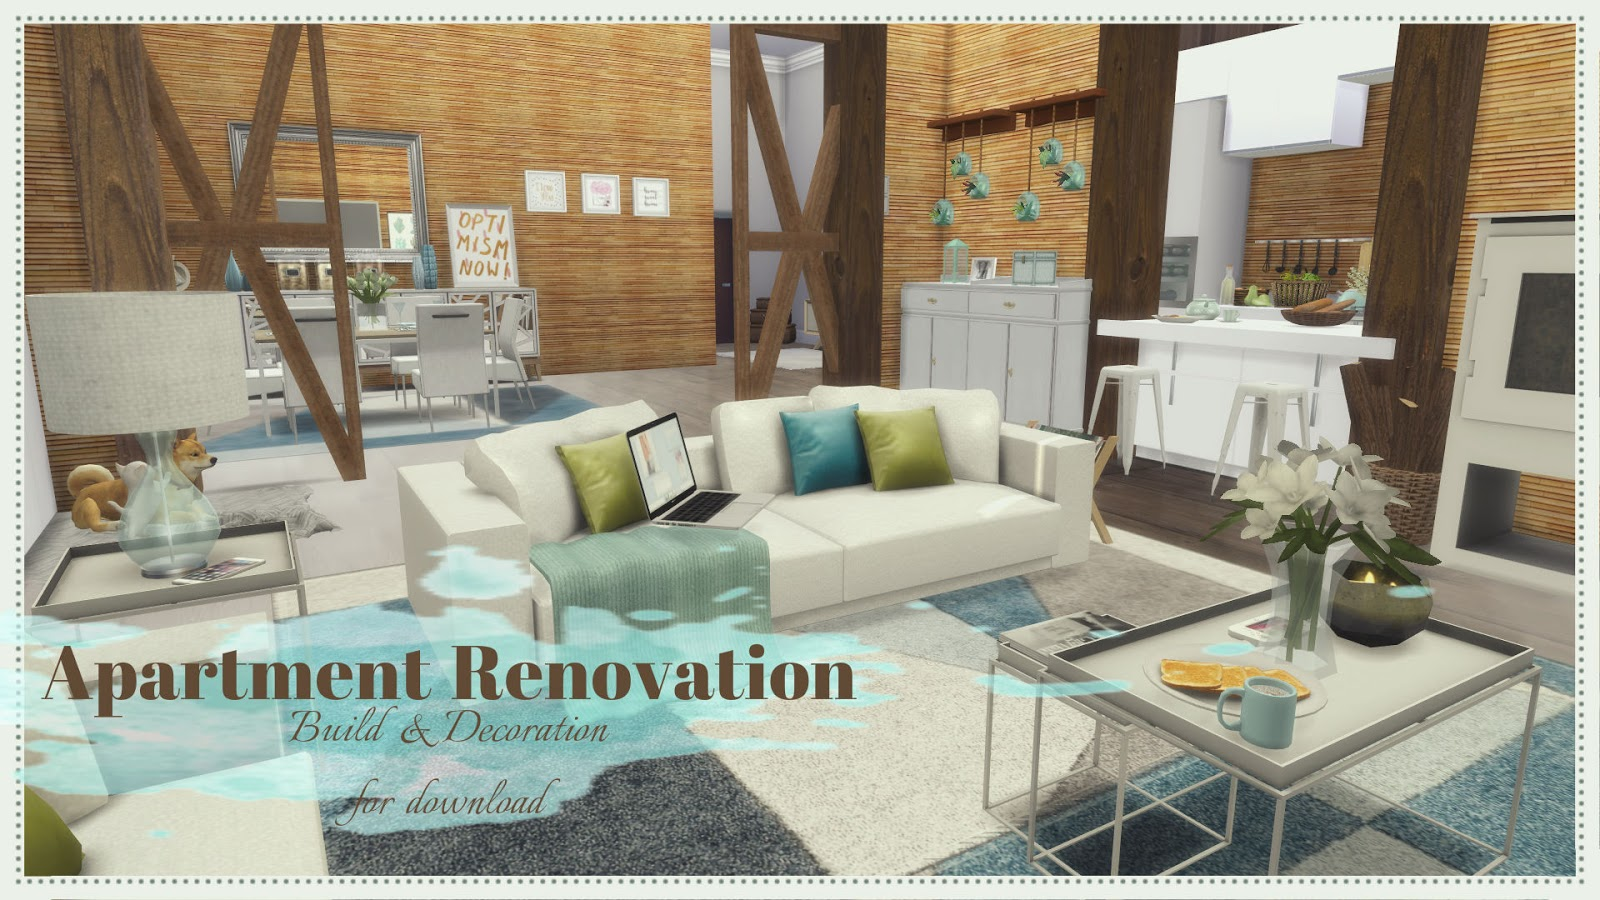 Sims 4 Apartment Renovation Iii House Mods For Download